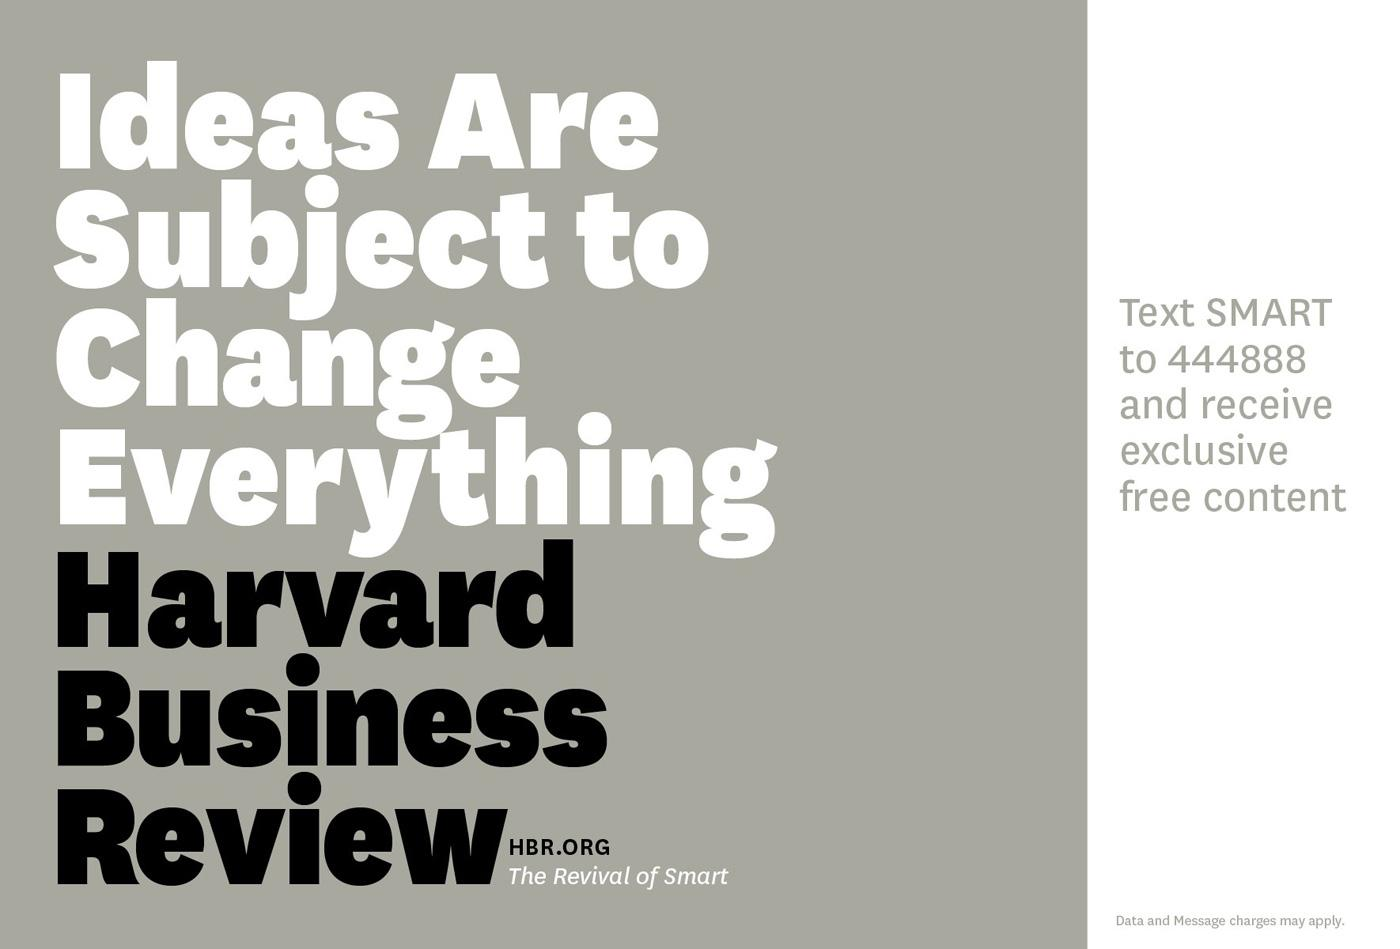 Harvard Business Review Outdoor Ad -  Ideas